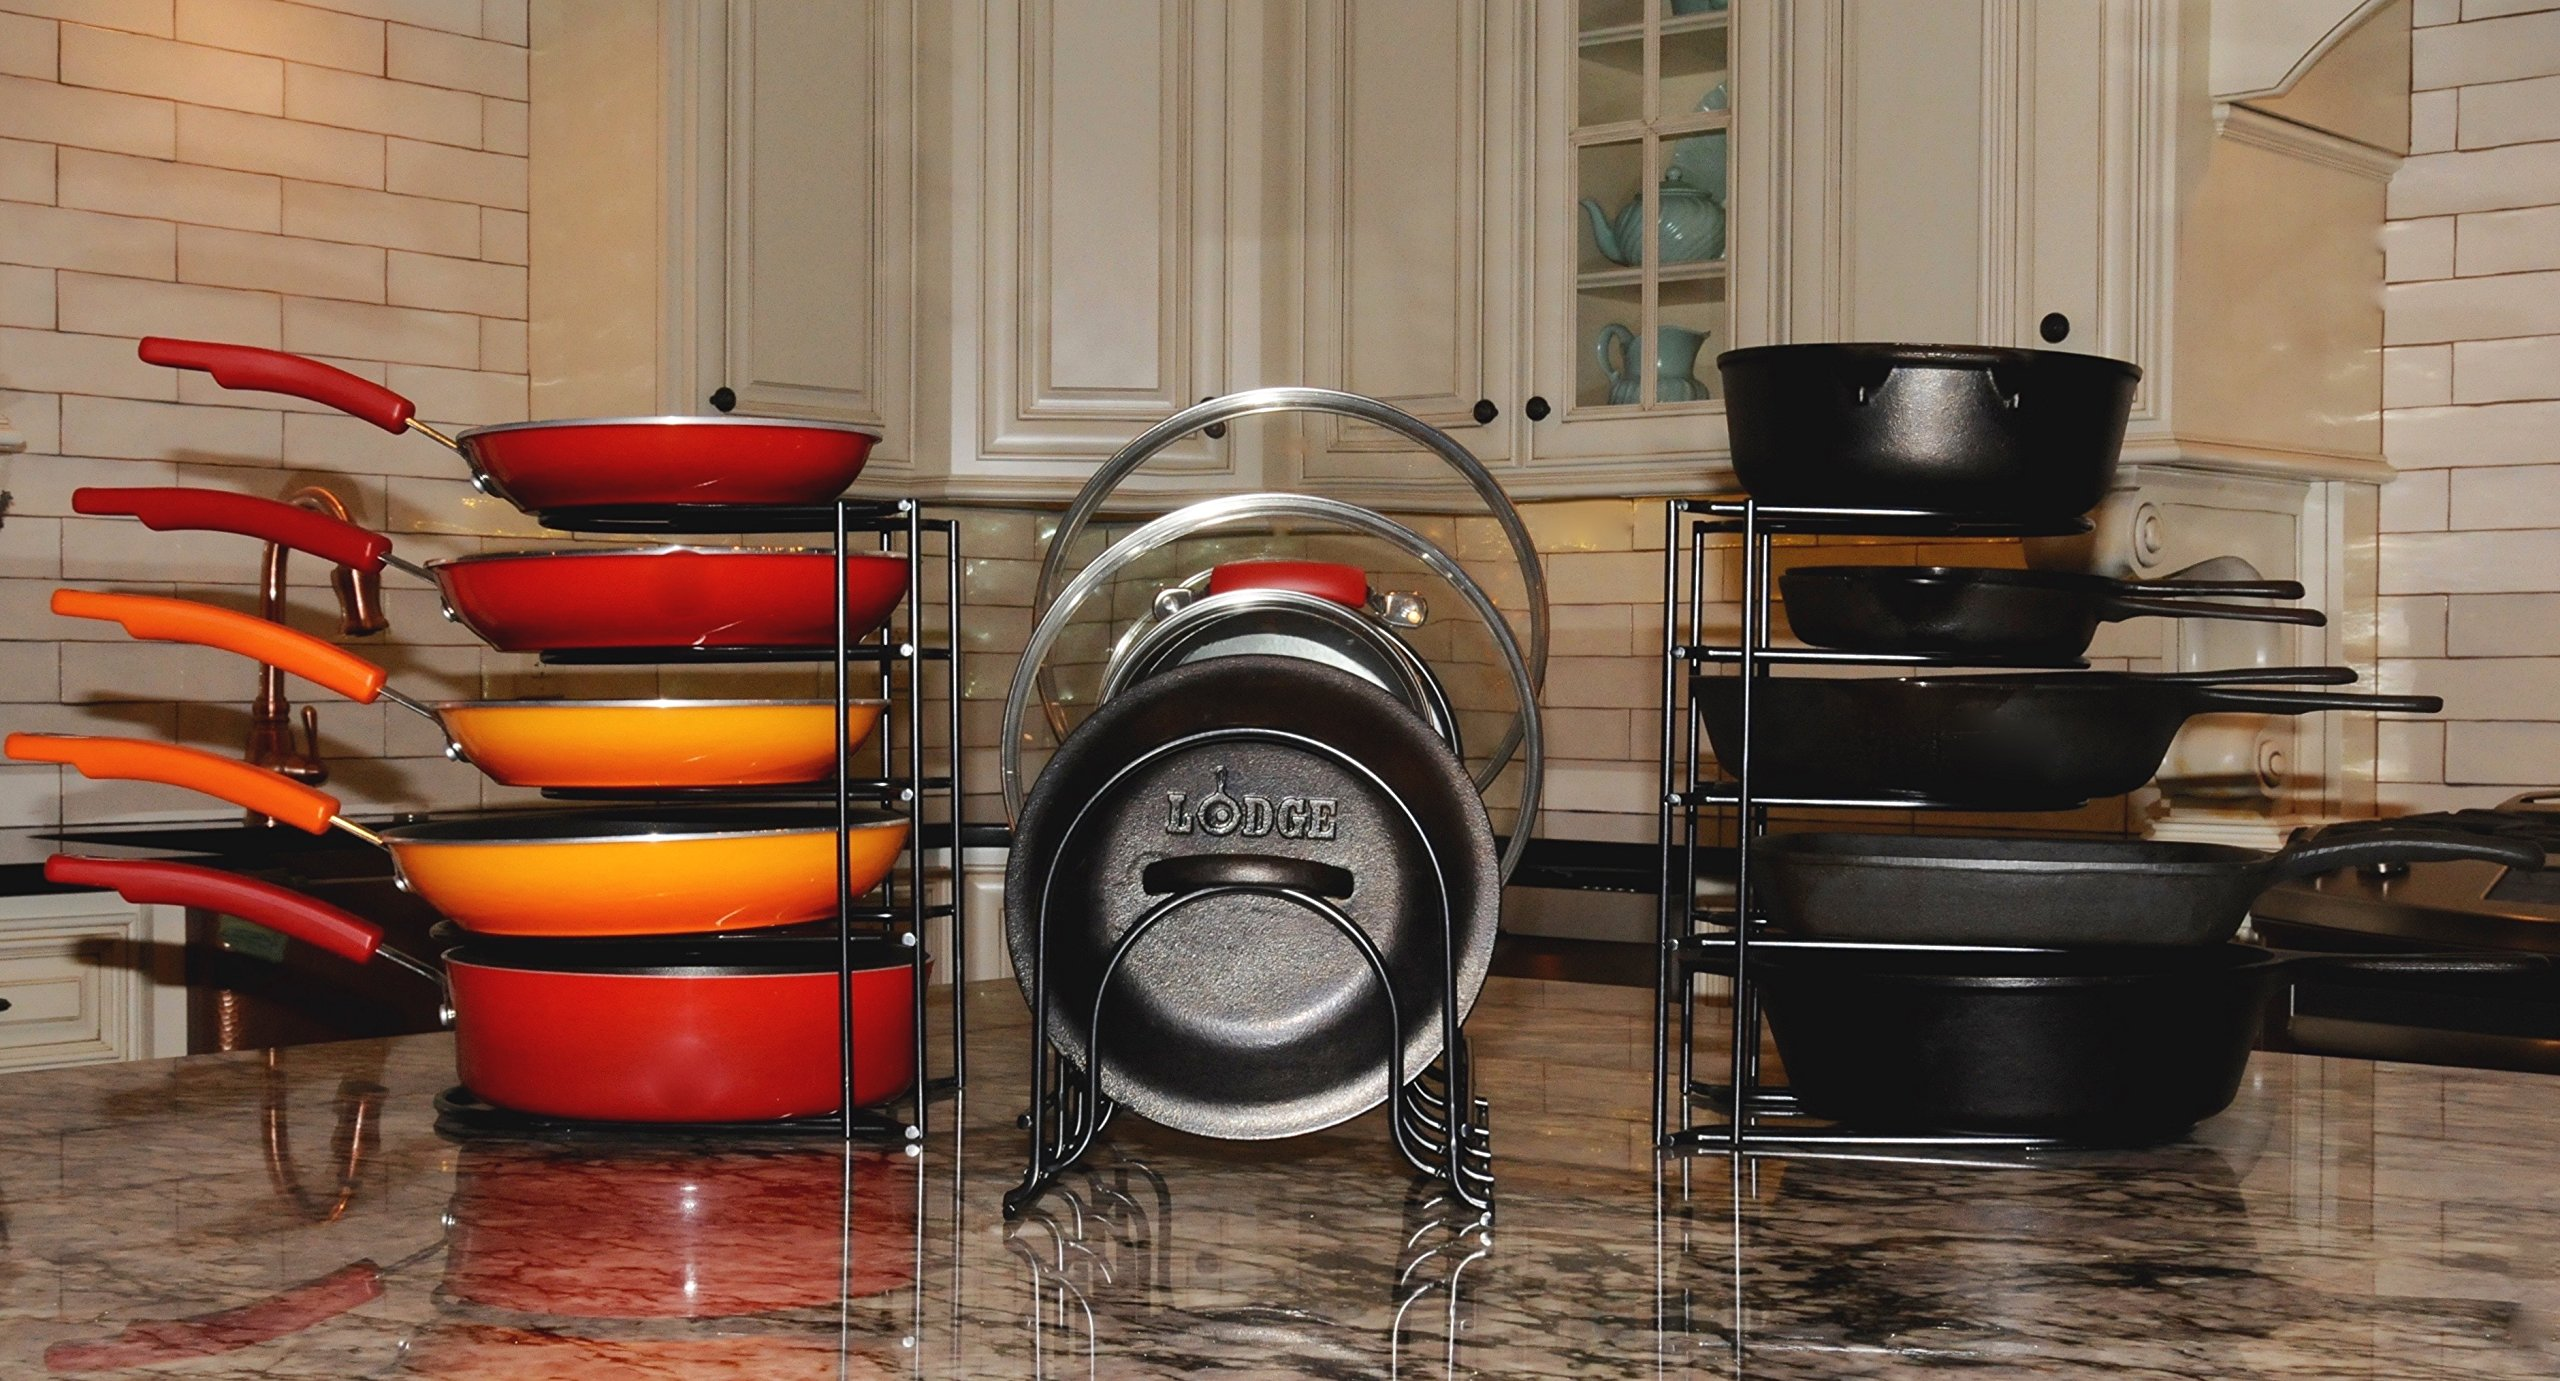 Extreme Matters Heavy Duty Pan Organizer - Bottom Tier 1 Inch Taller for Larger Pans - No Assembly Required - Black by Extreme Matters (Image #7)